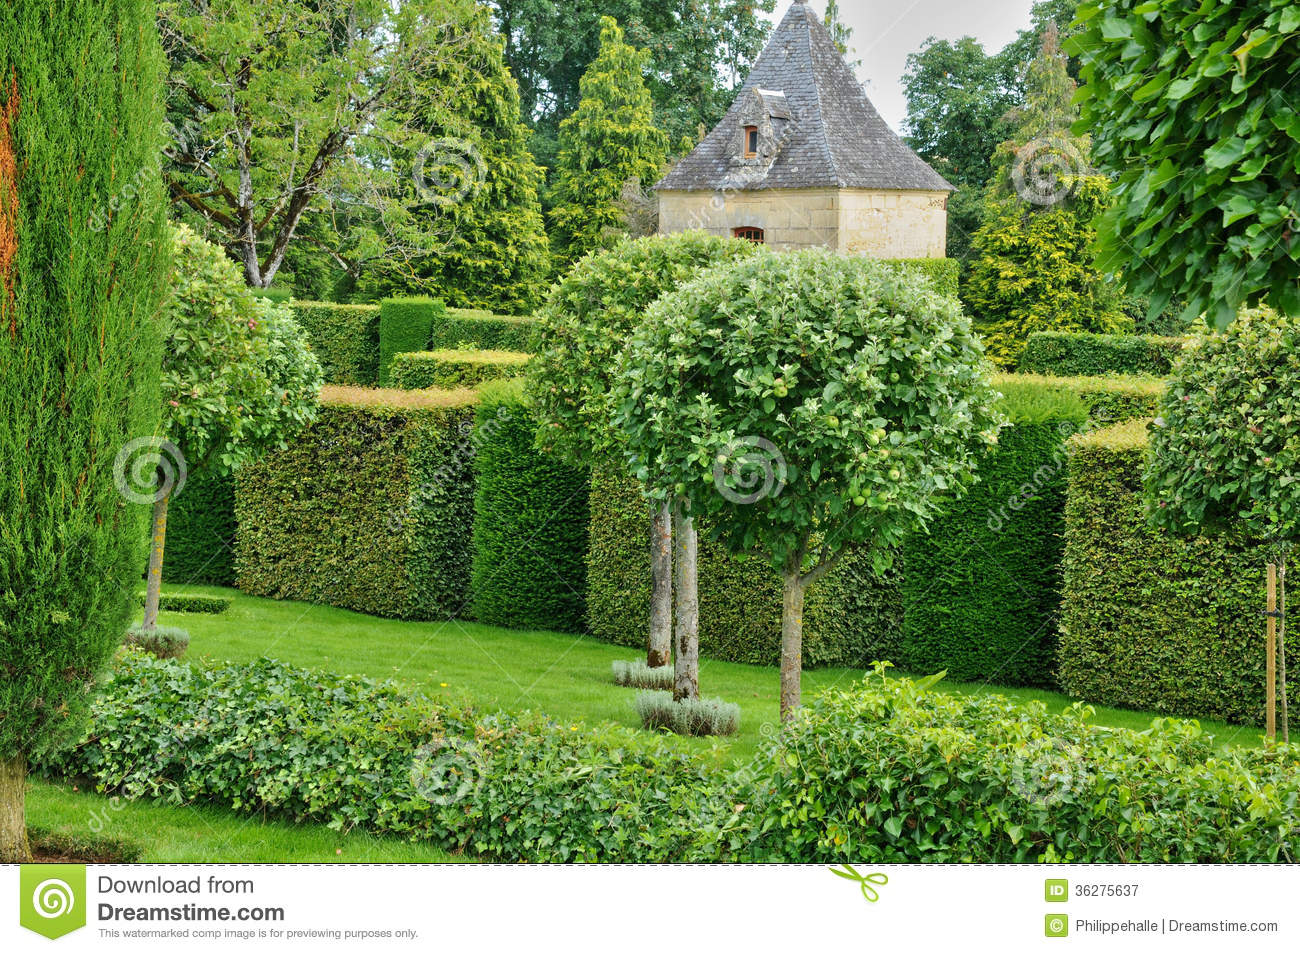 France picturesque jardins du manoir d eyrignac in dordogne royalty free stock photography - Jardin du manoir d eyrignac ...